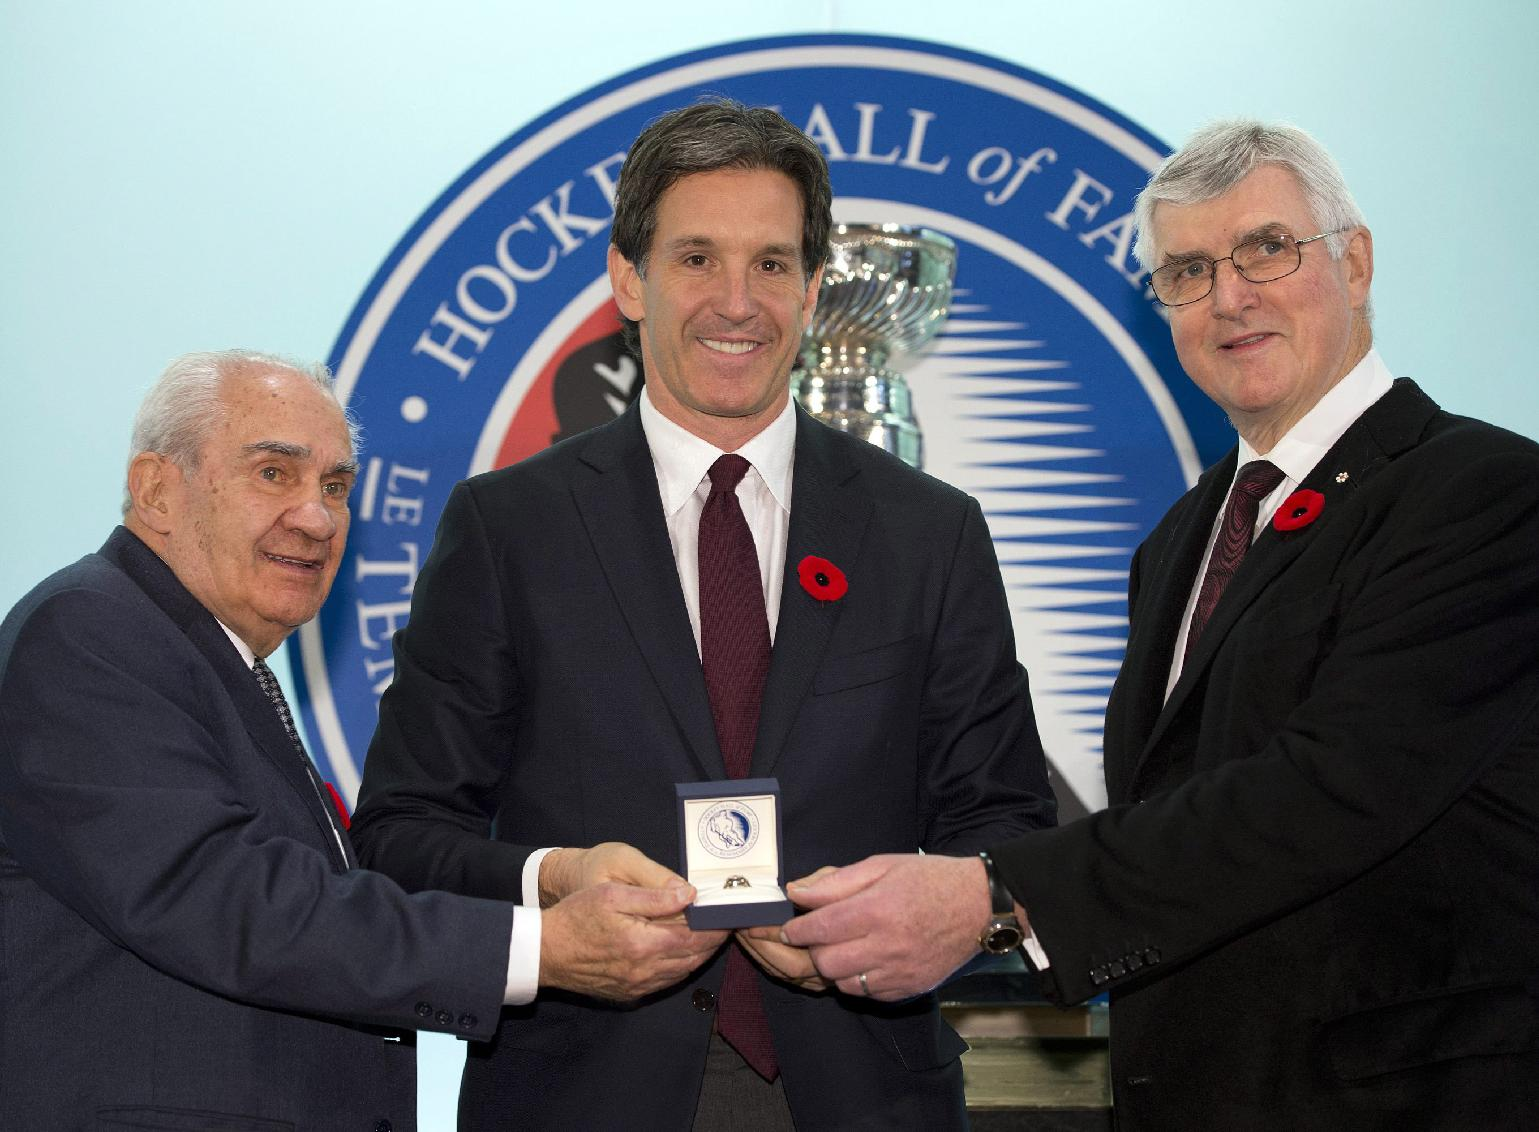 Hockey Hall of Fame inductee Brendan Shanahan is presented with his ring by Hall of Fame Chairman Pat Quinn , right, and Chair of the selection committee Jim Gregory  is presented with his ring by Hockey Hall of Fame Chairman Pat Quinn at the Hall in Toronto on Friday, Nov. 8, 2013